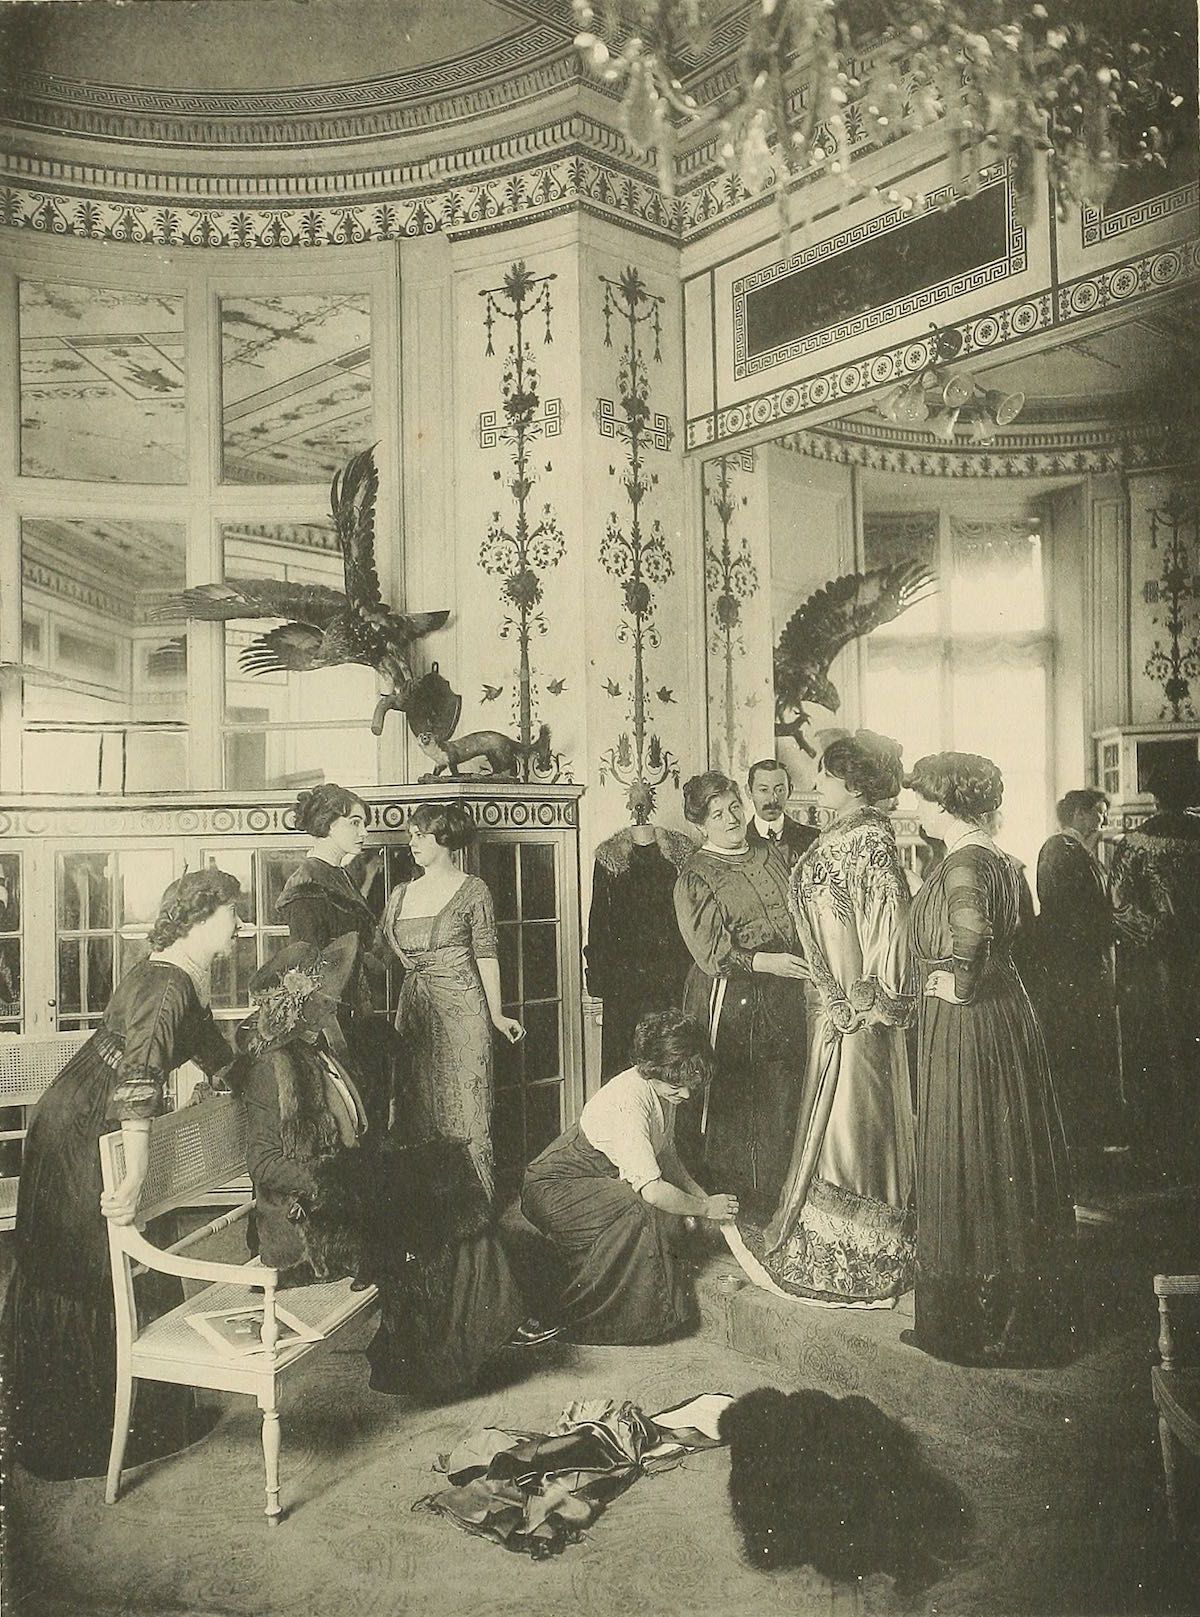 Working in the paris fashion industry years ago